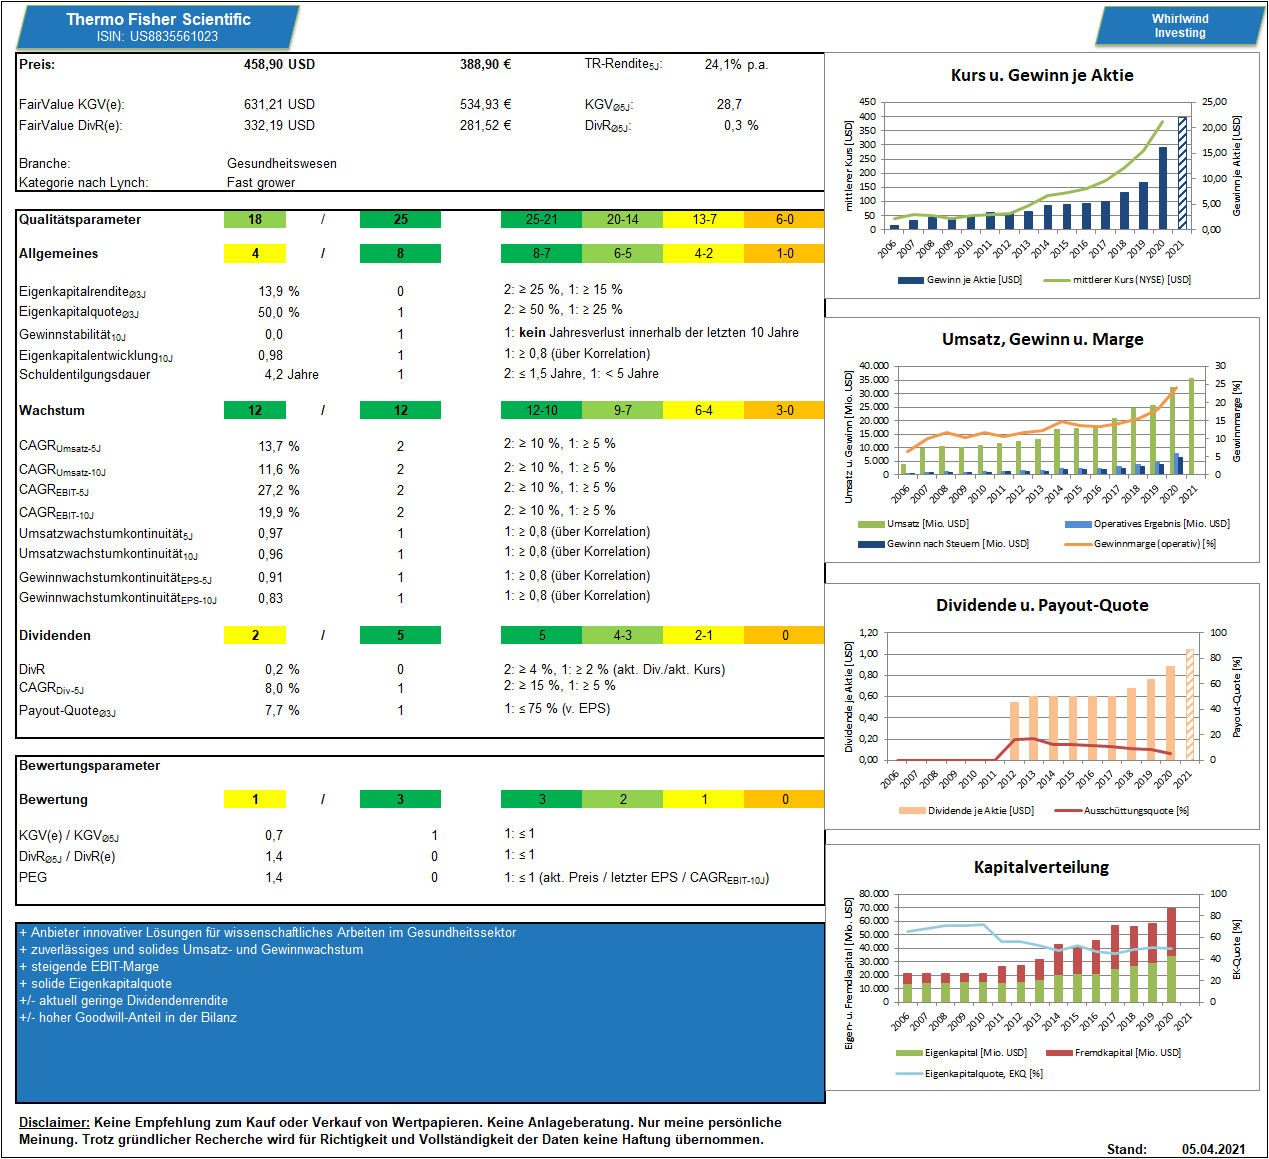 Thermo Fisher Scientific Dashboard, by Whirlwind-Investing